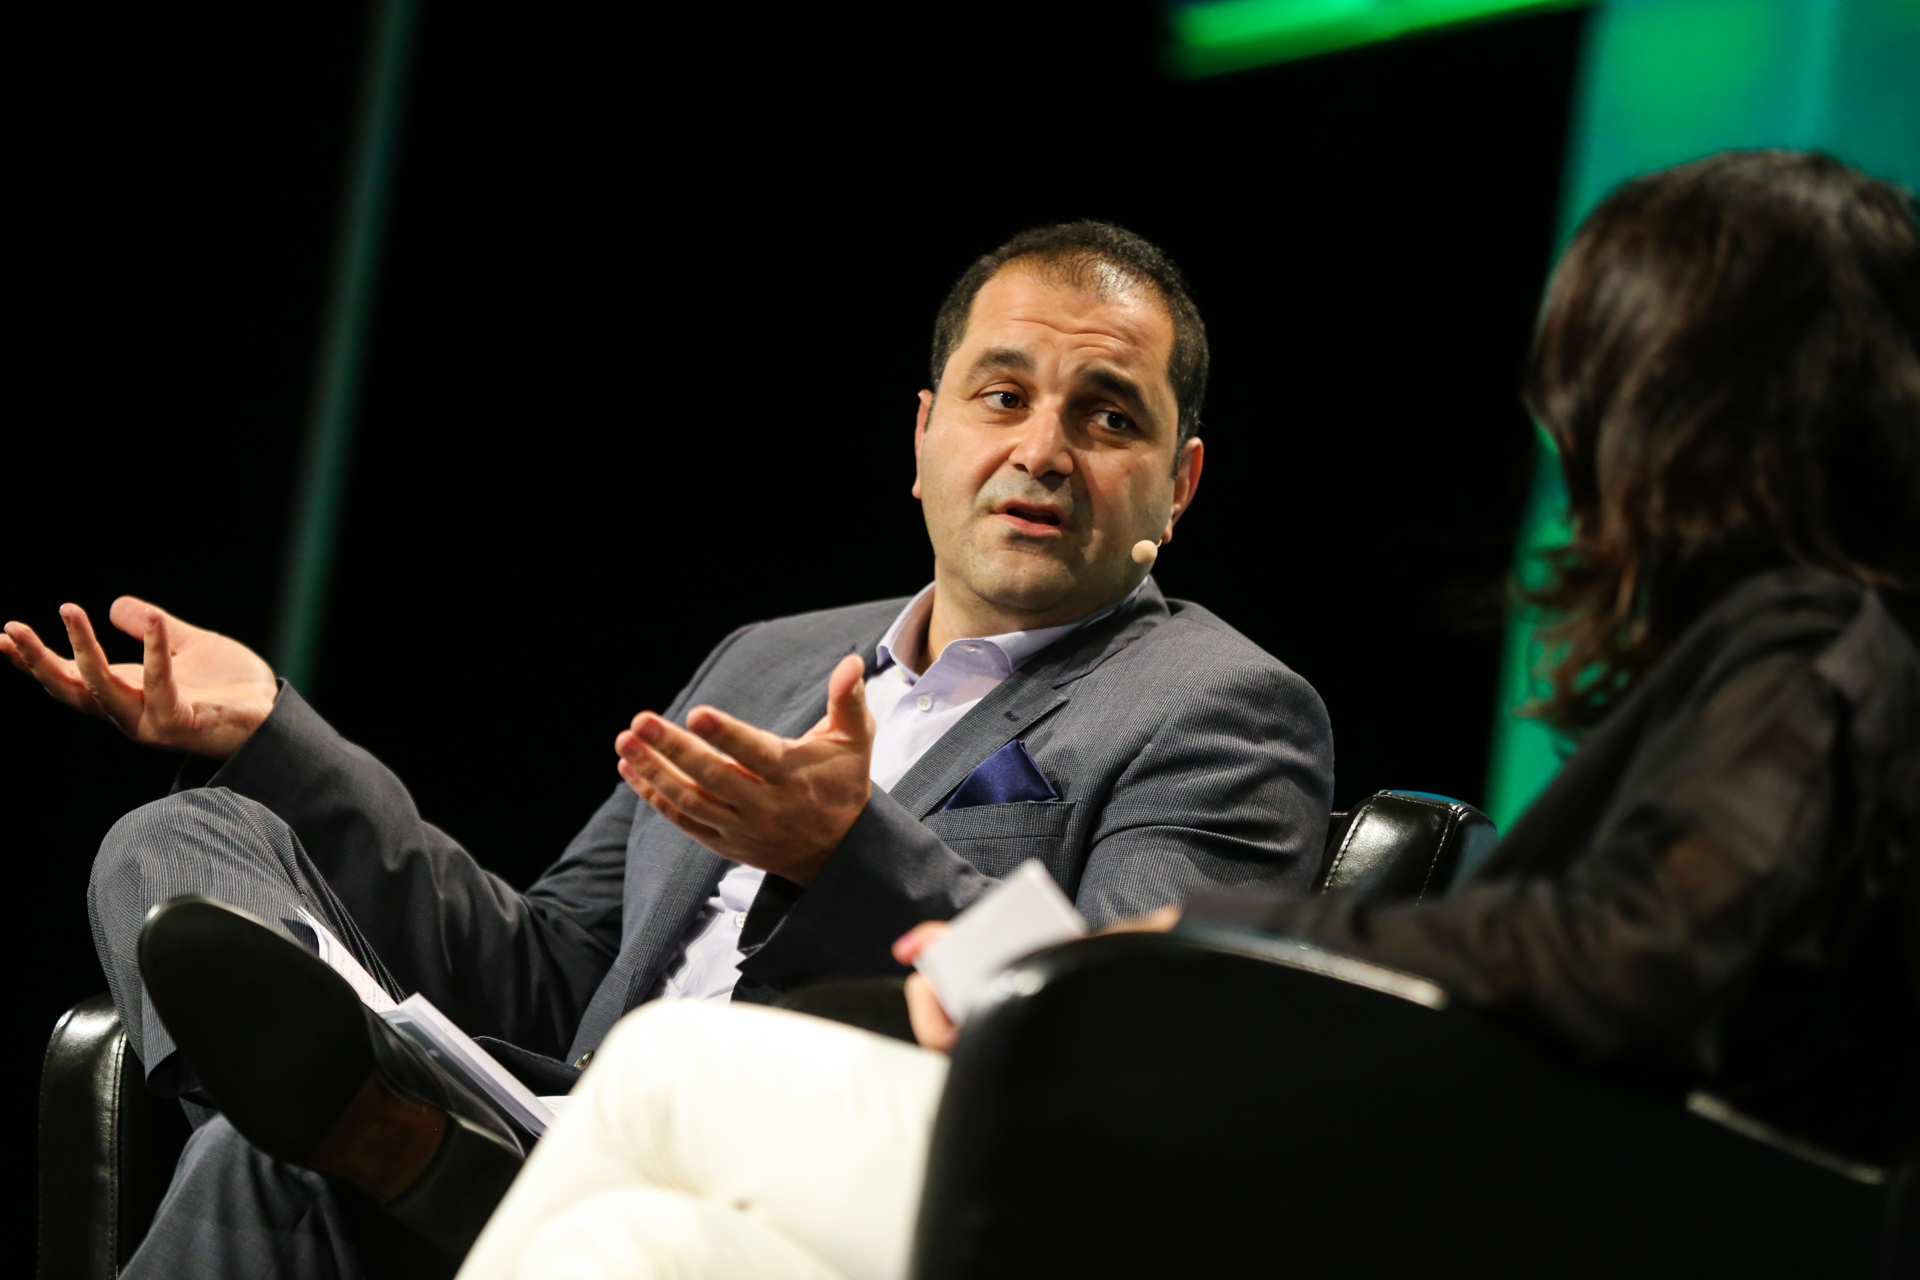 Two Democratic senators donate funds from Shervin Pishevar to charities for women